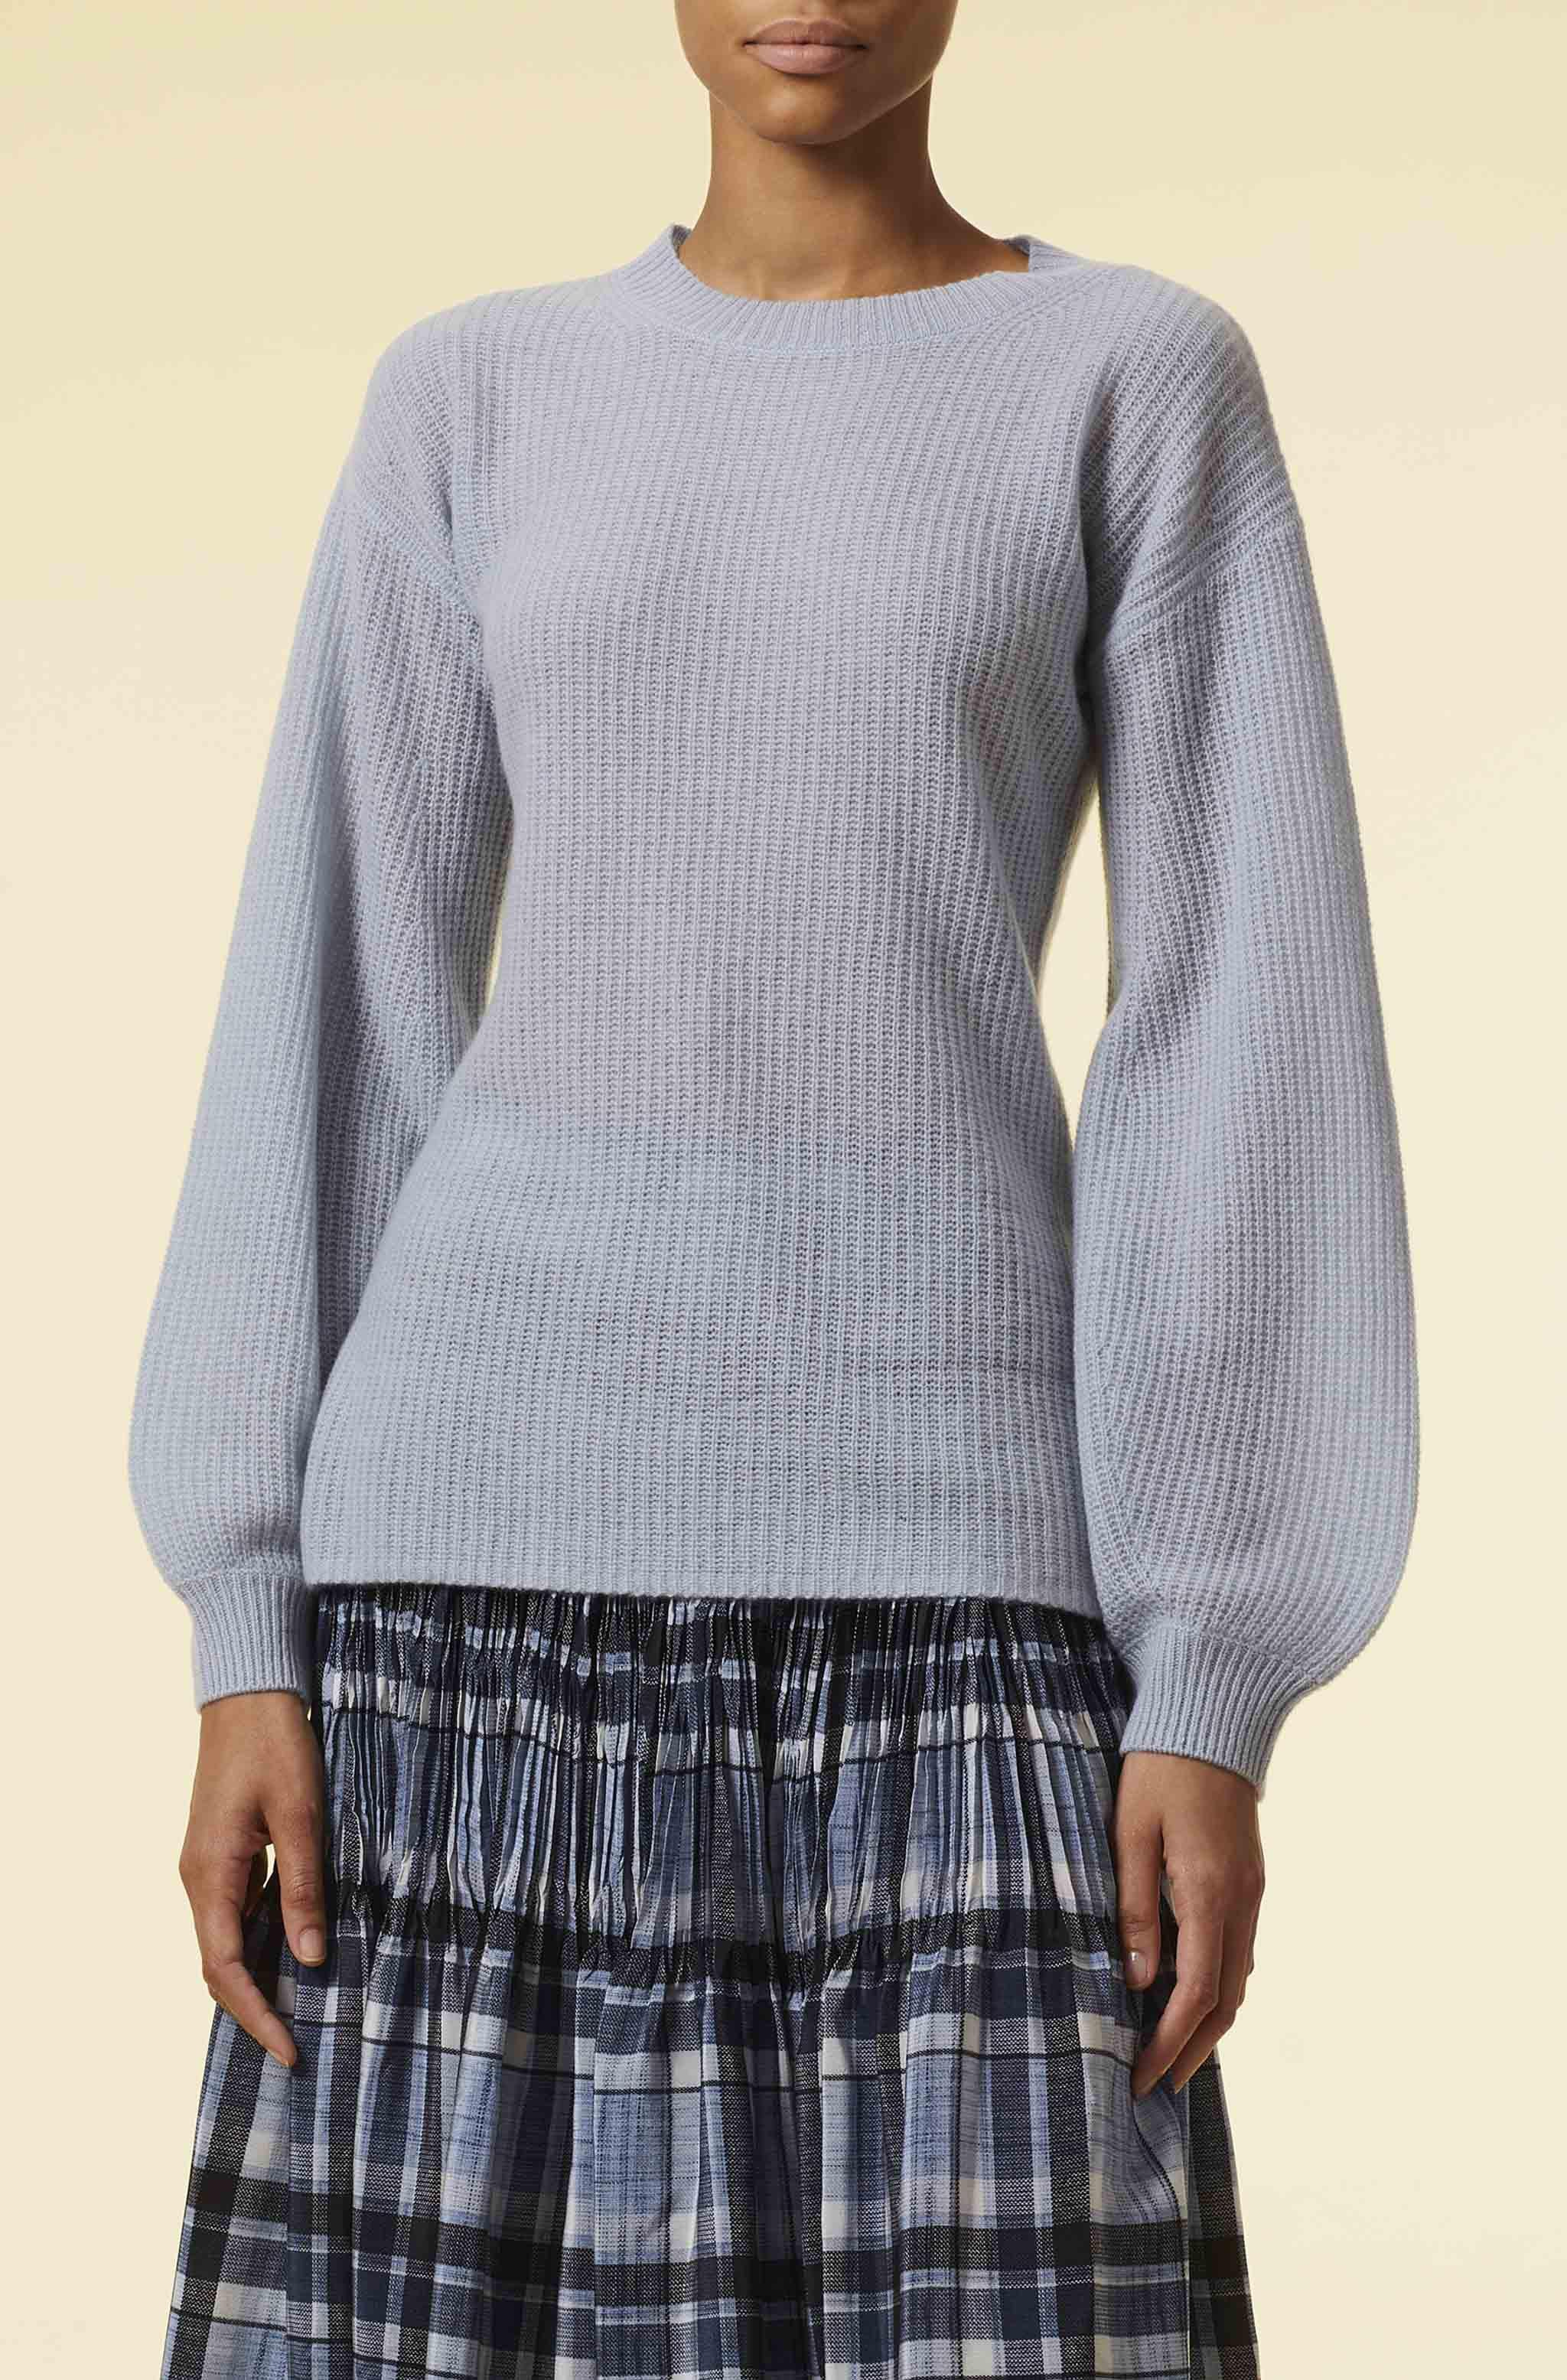 'Brenner' Knit Sweater